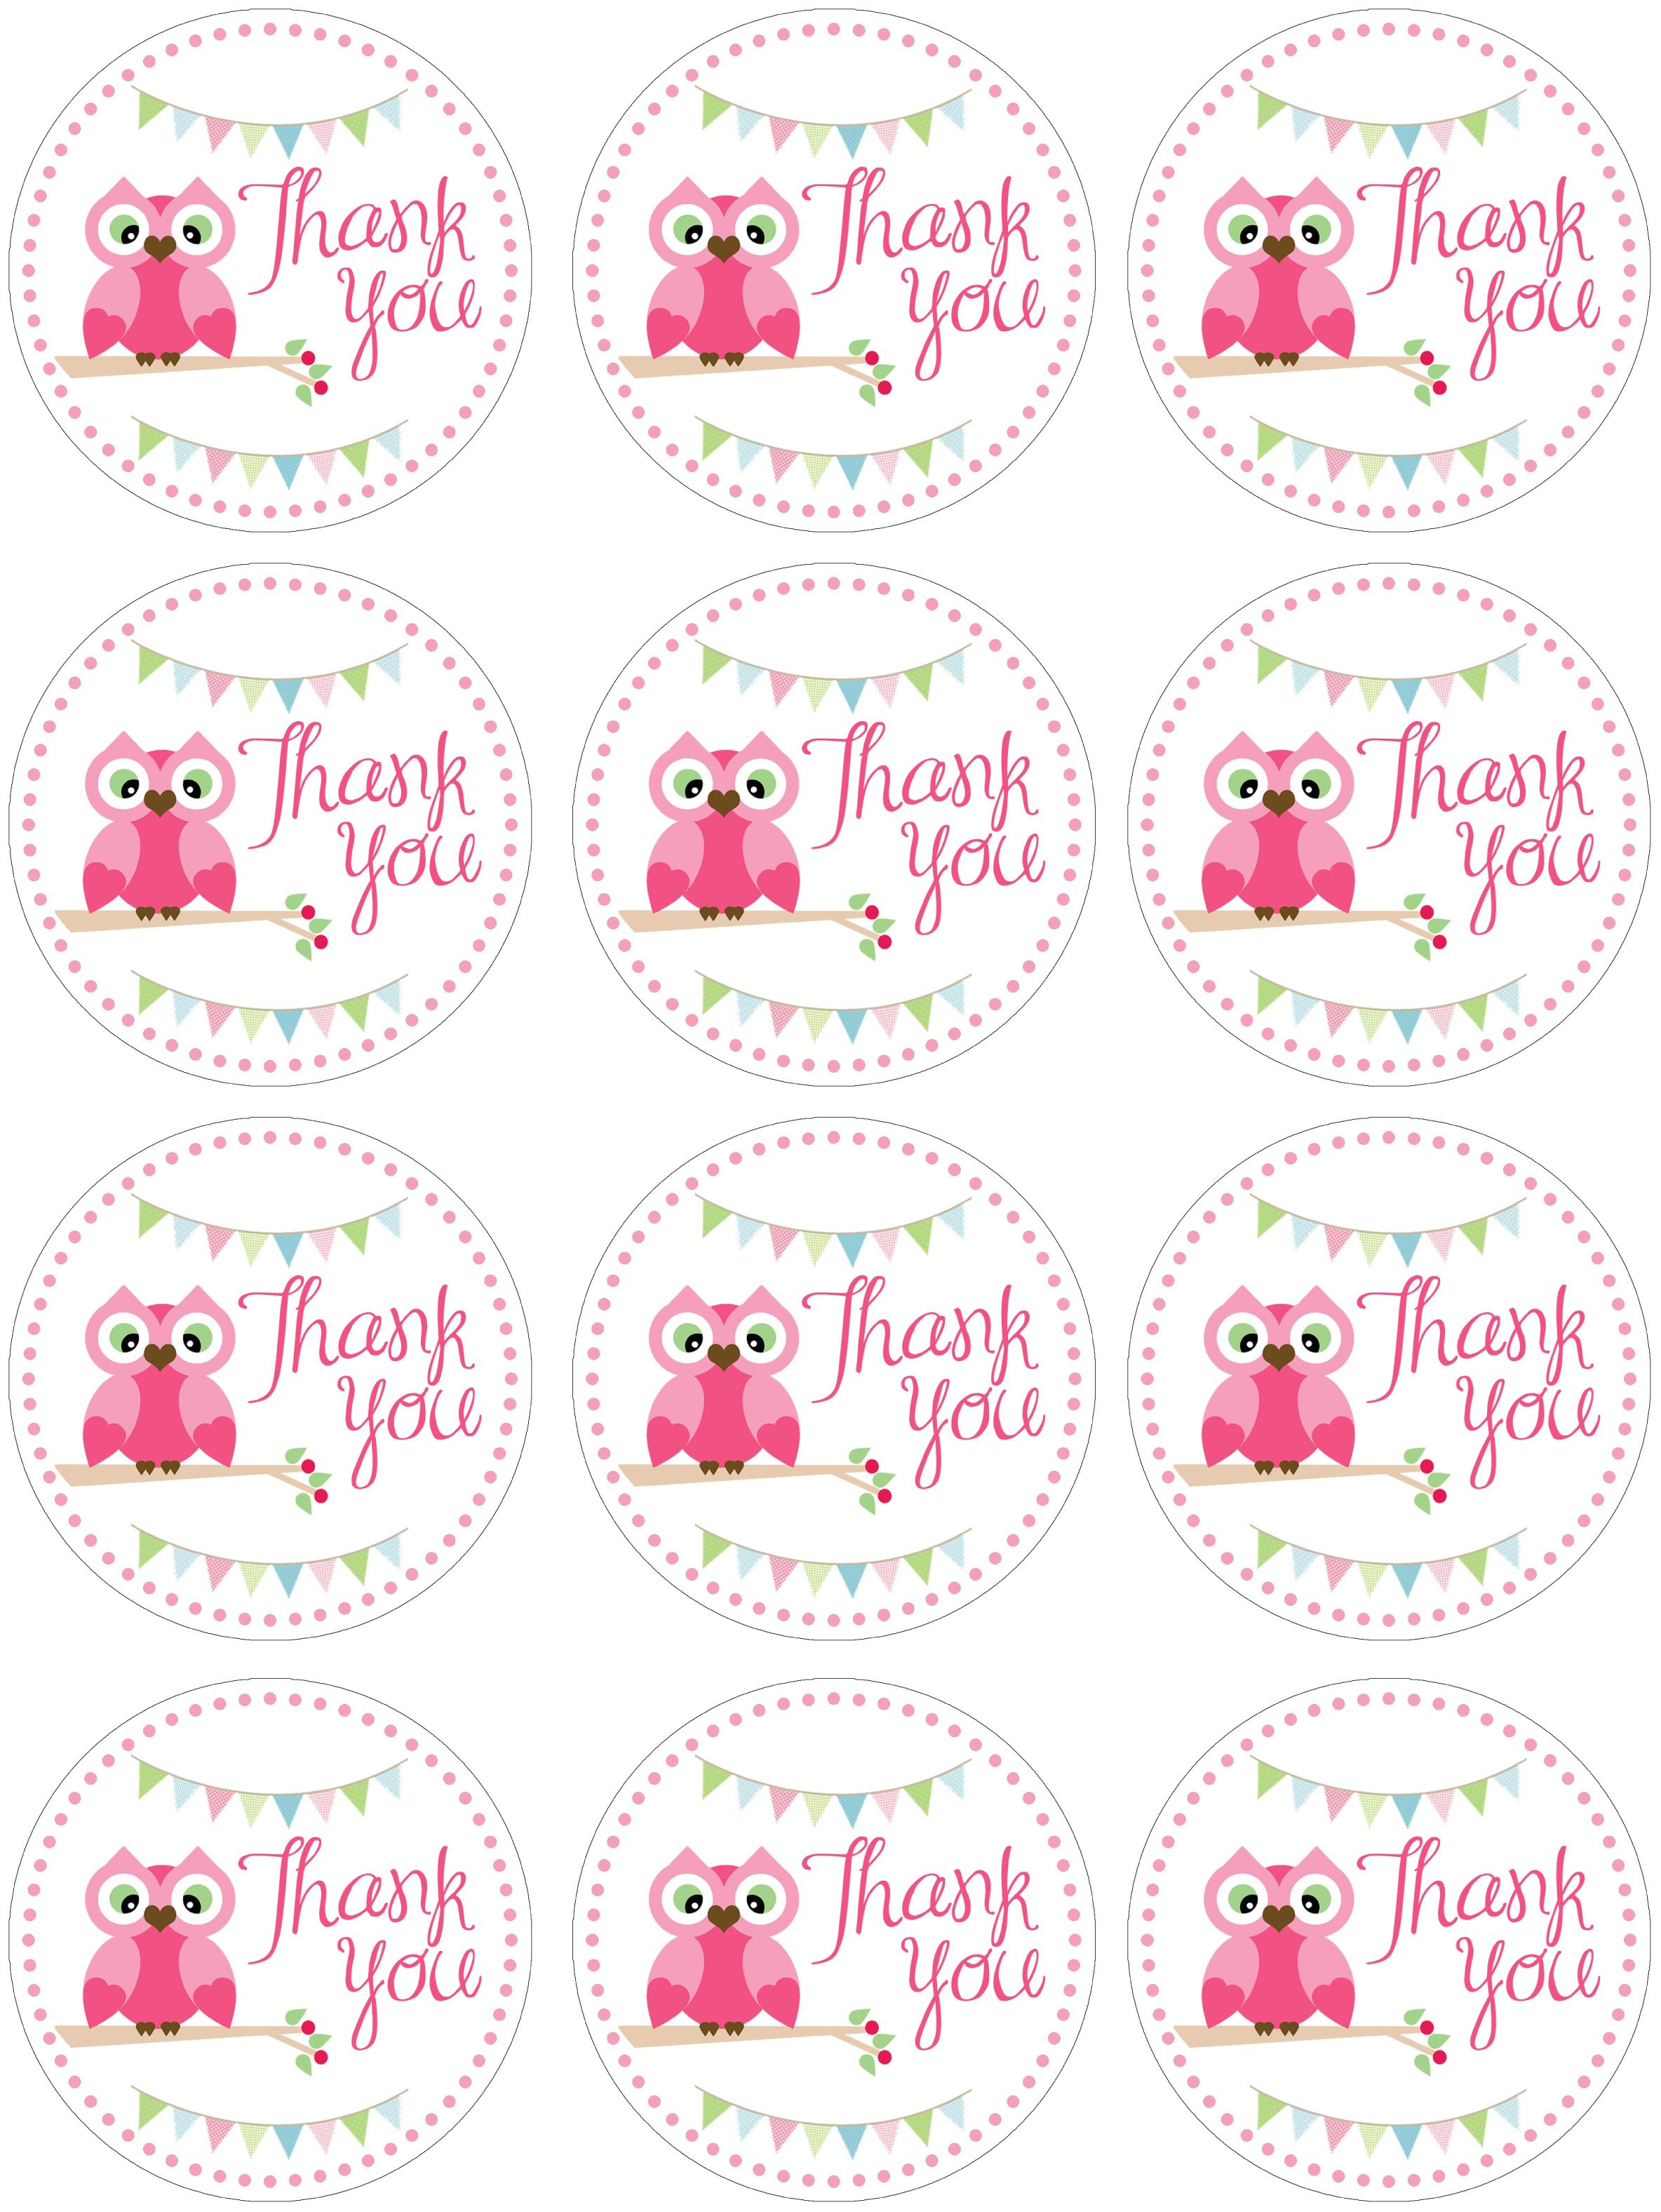 Owl Birthday Party With Free Printables | תגיות -Labels - Free Printable Thank You Tags For Birthday Favors